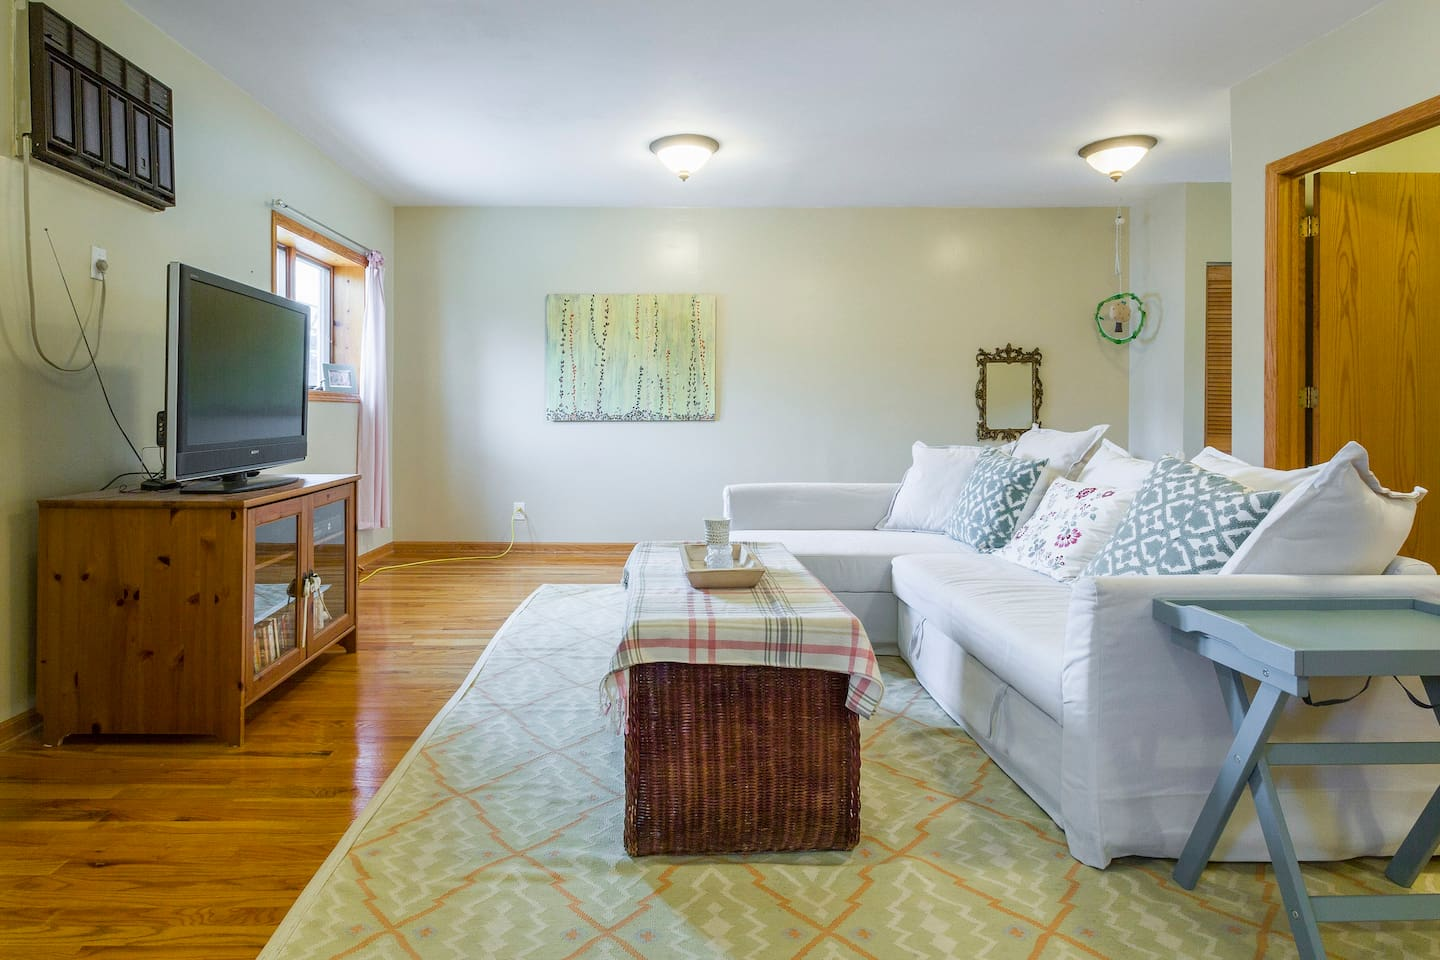 Welcome to our coach house in Oak Park!